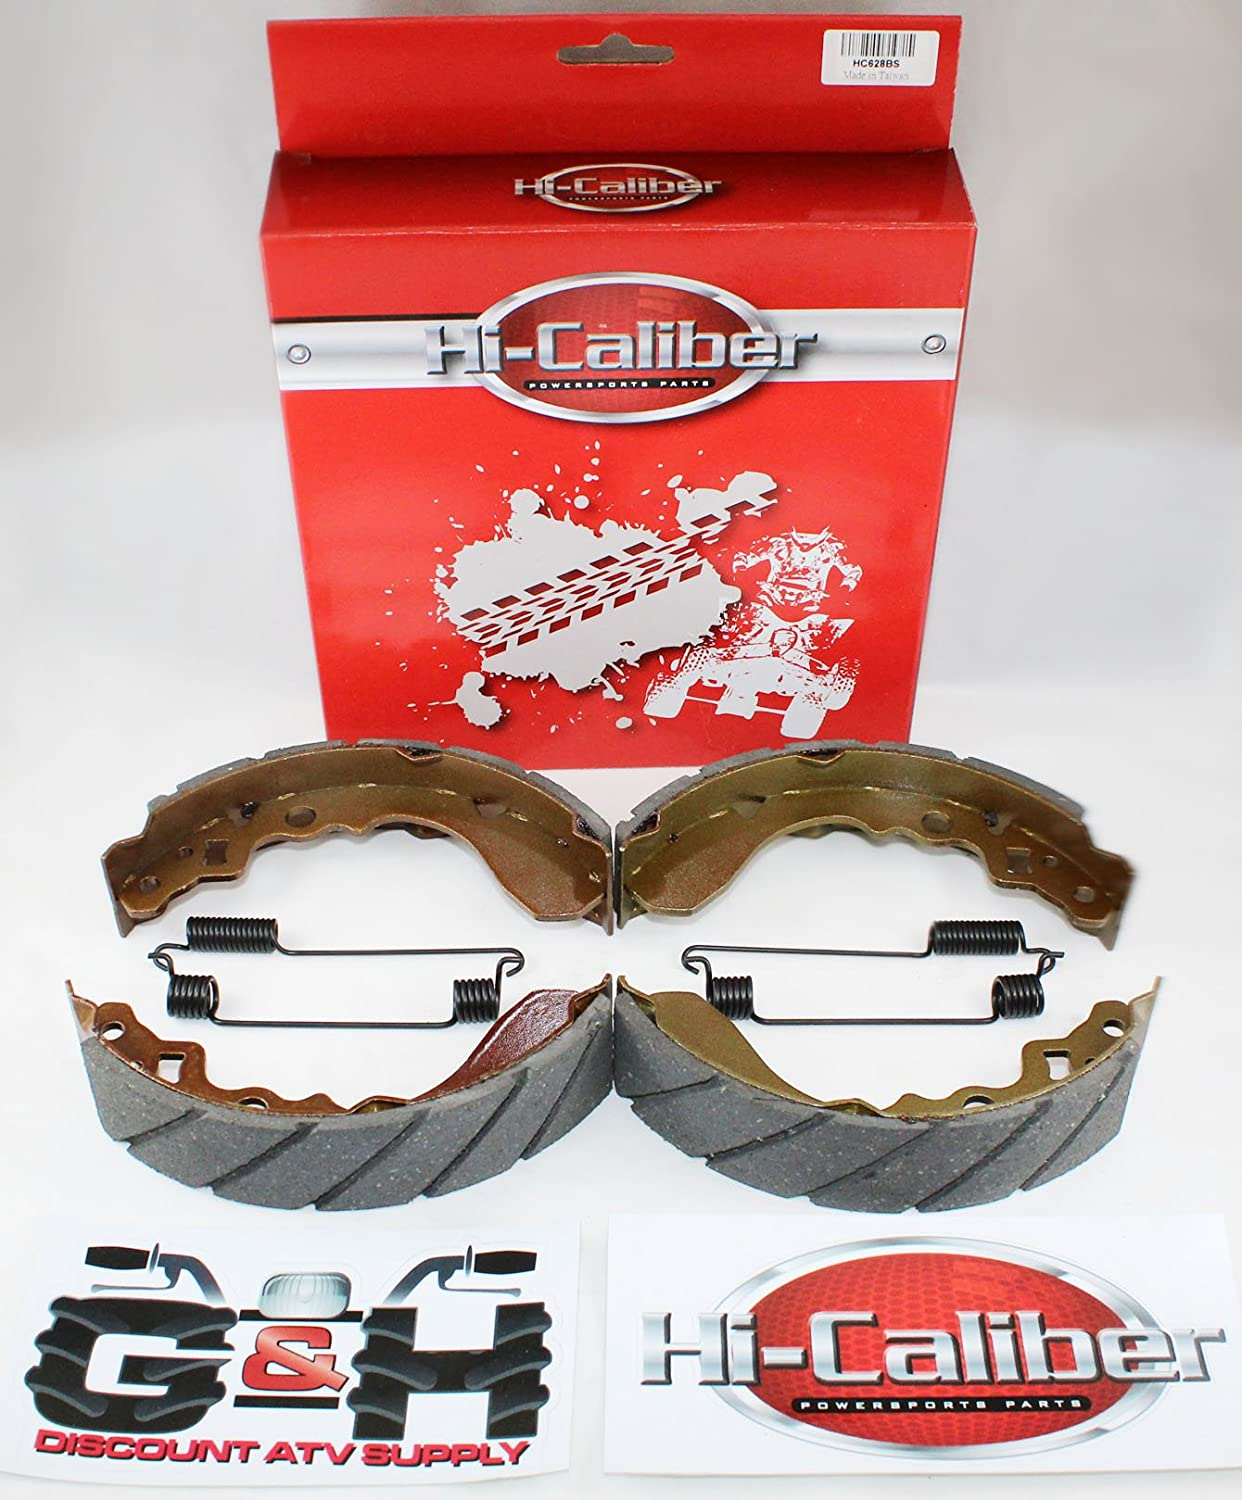 2 Sets WATER GROOVED FRONT BRAKE SHOES & SPRINGS for the Kawasaki Mule 550 KAF 300 C1-C7 Hi-Caliber Powersports Parts